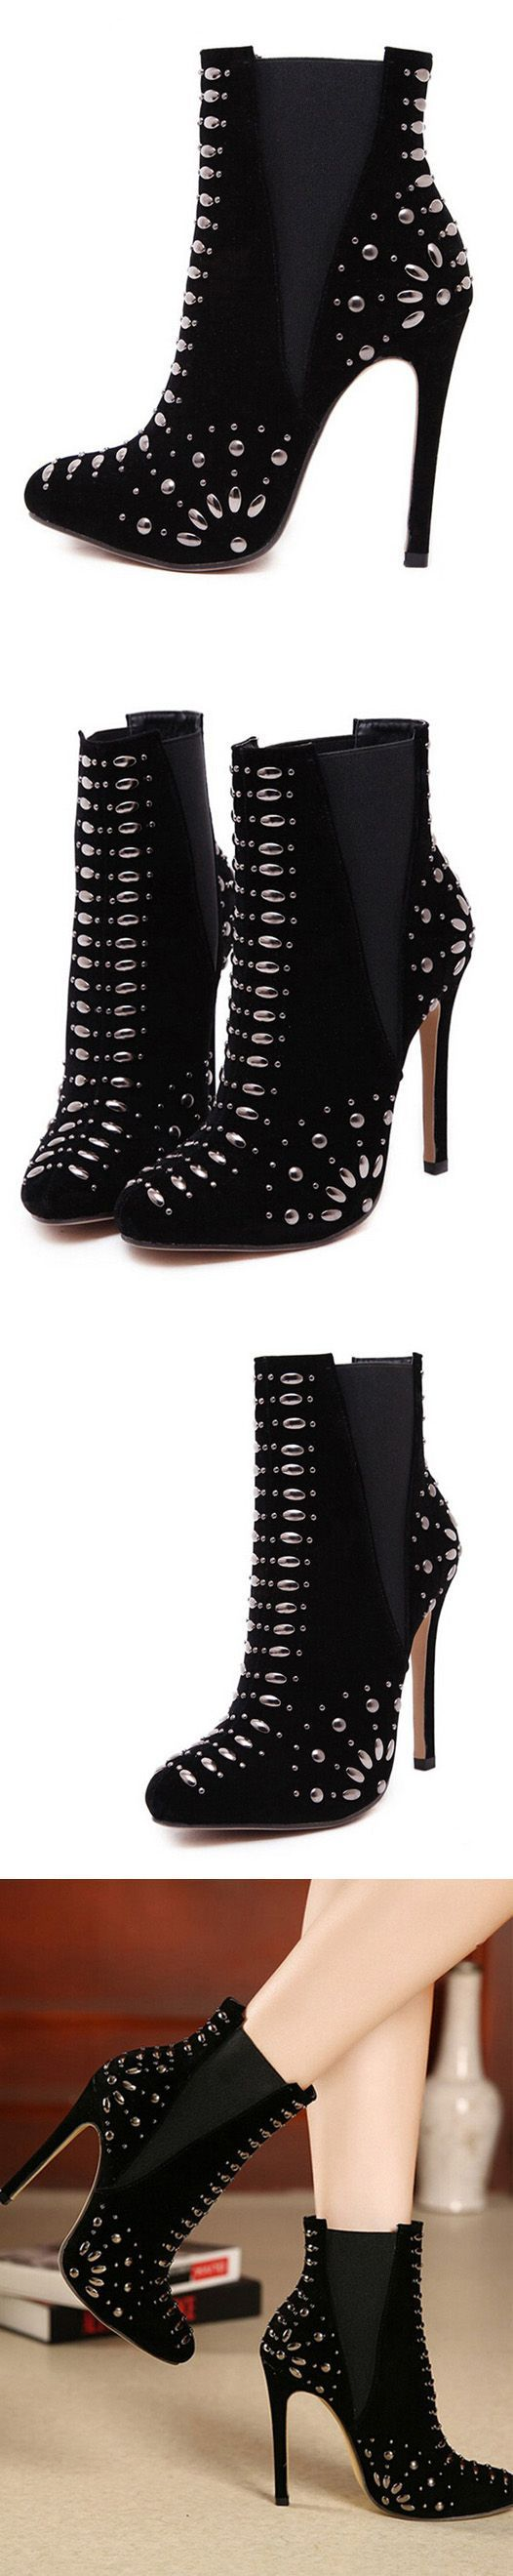 MYNYSTYLE | Black Suedette Studded Stretch Side Heeled Ankle Boots.